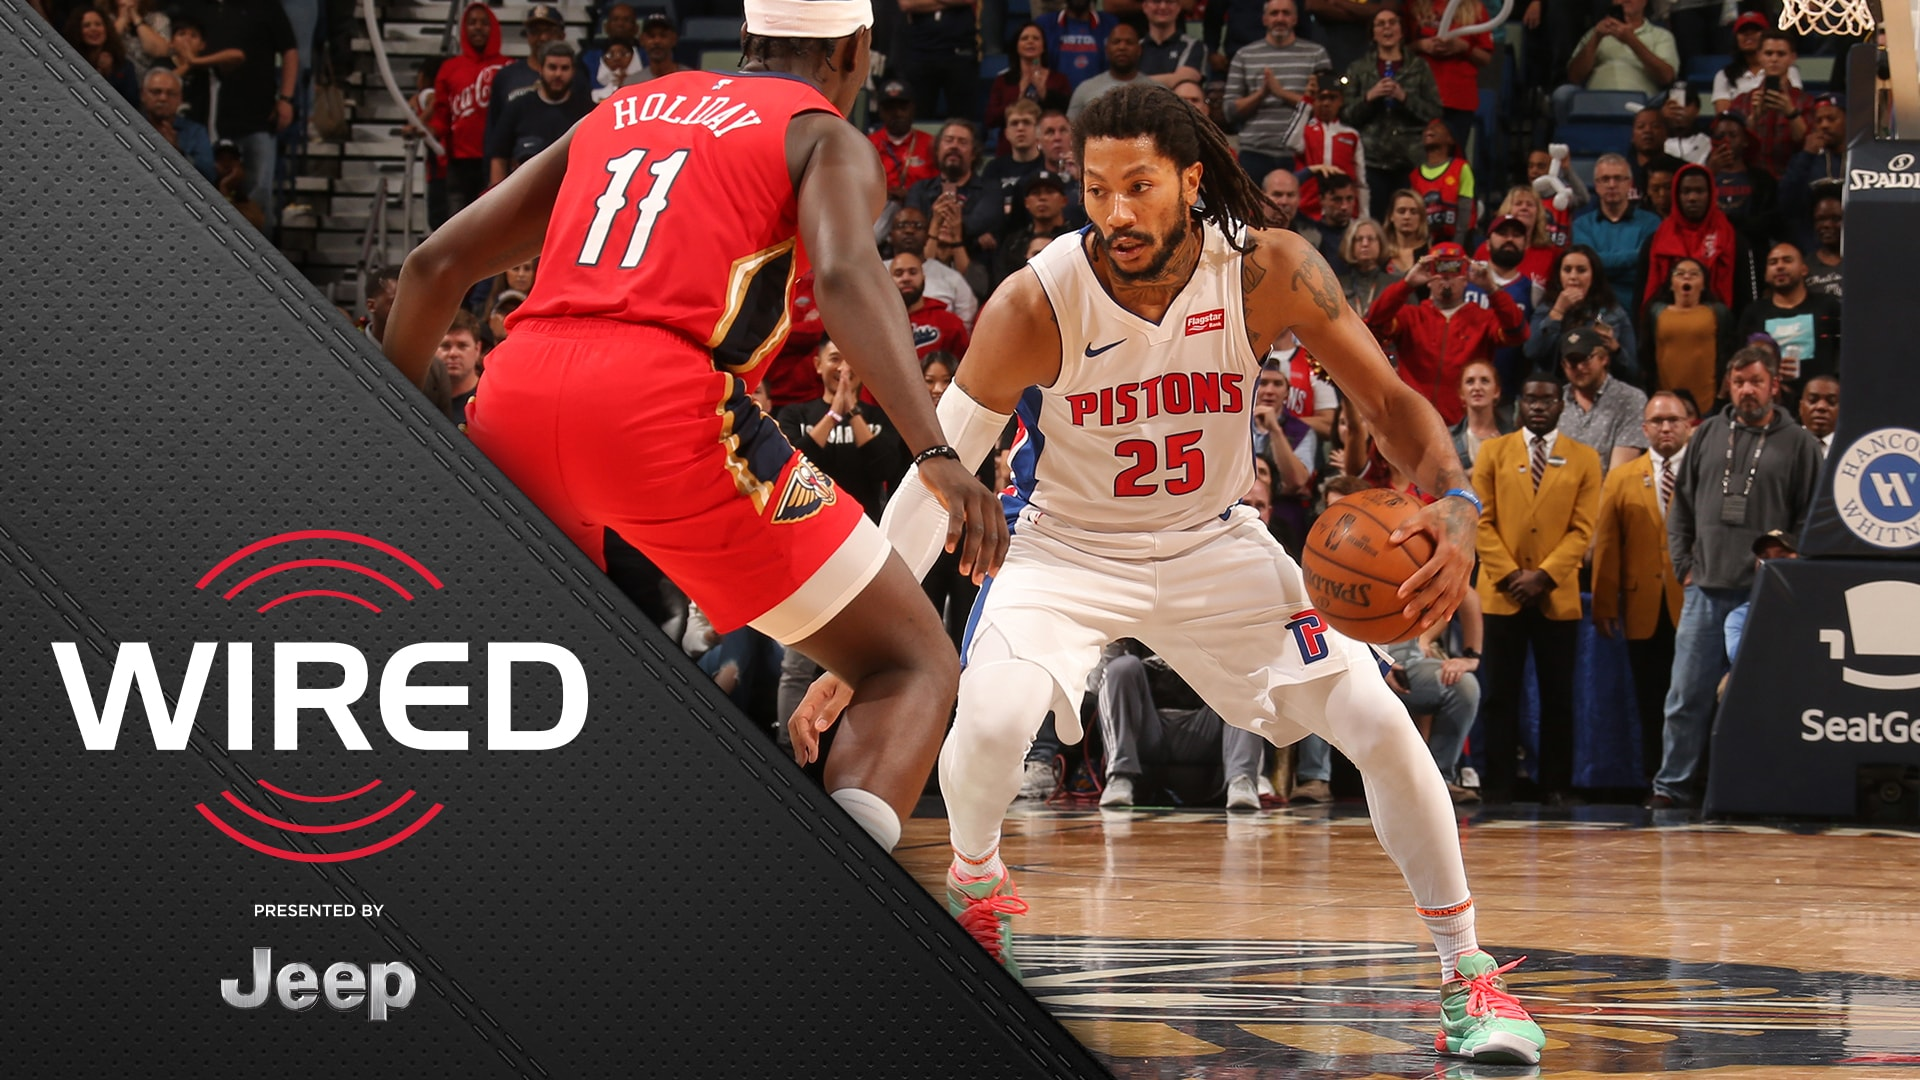 Wired, presented by Jeep: Pistons vs Pelicans